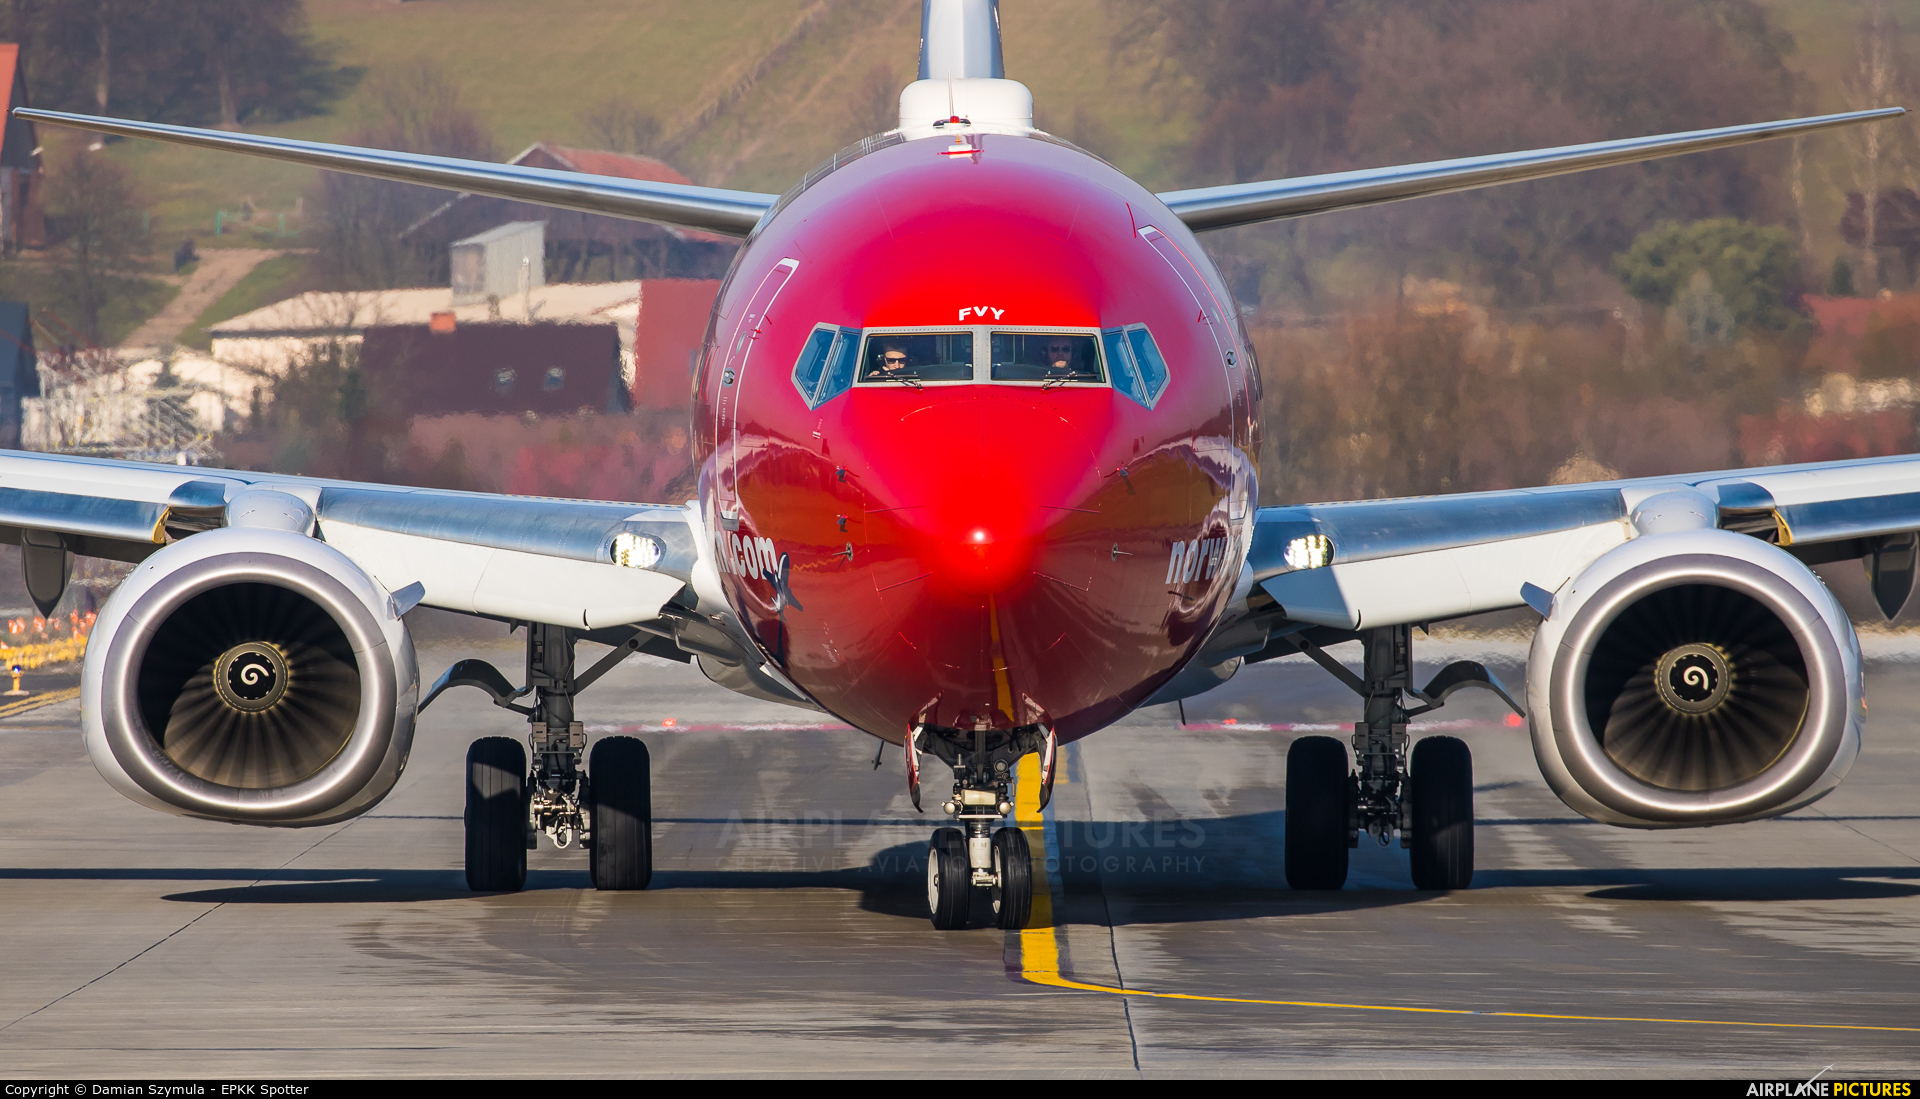 Norwegian Air International EI-FVY aircraft at Kraków - John Paul II Intl